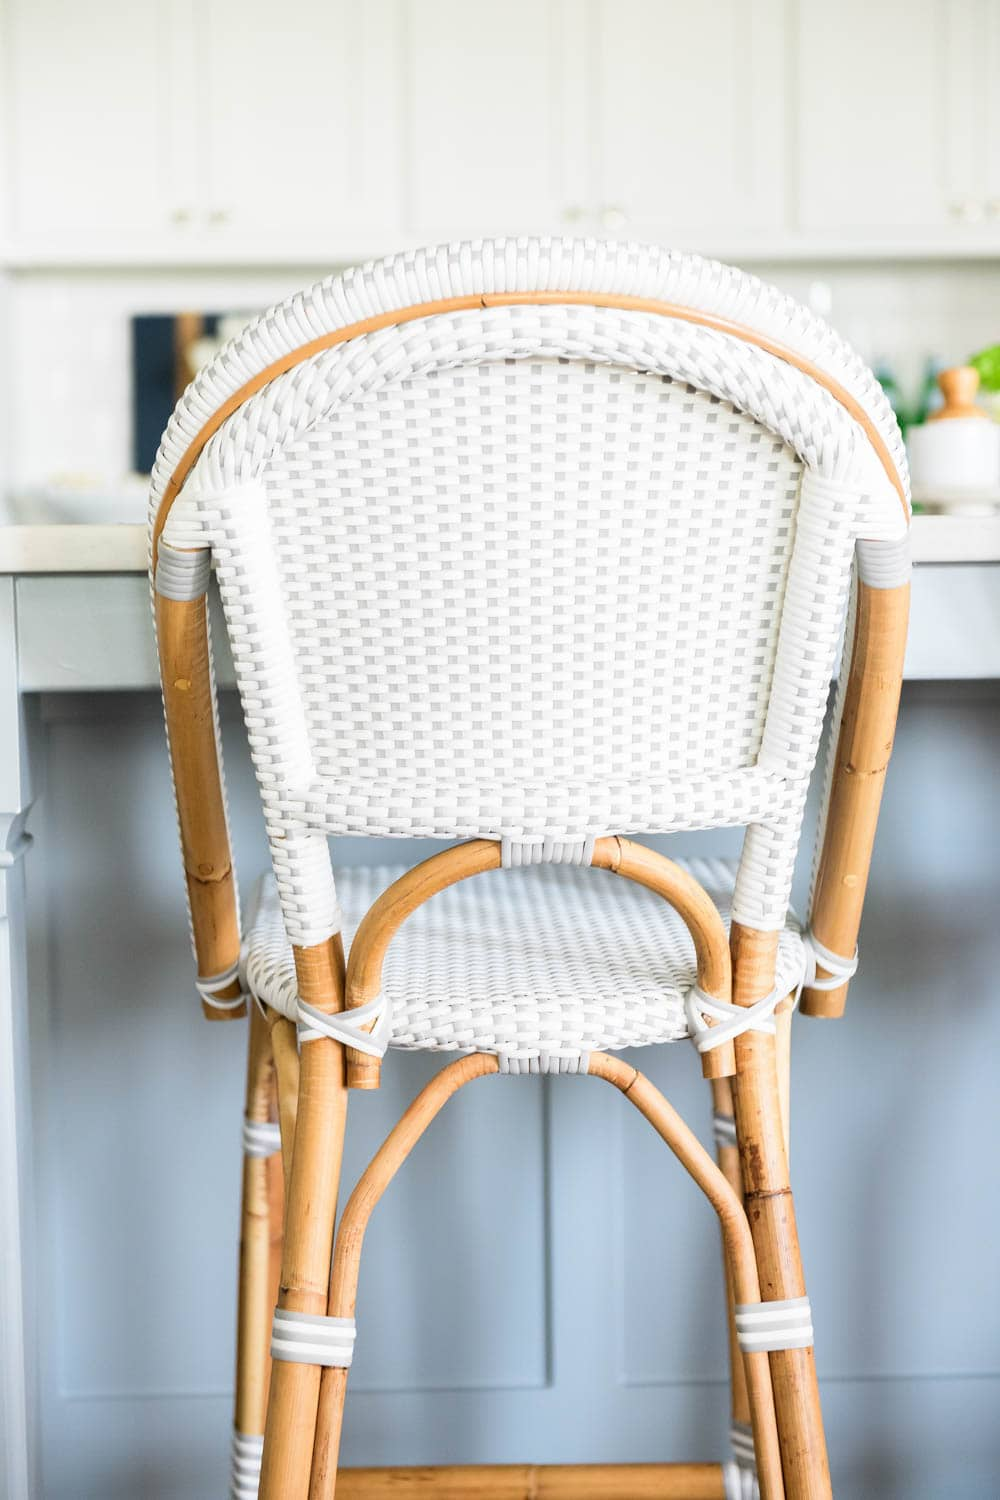 A detailed review of the Serena and Lily Riviera barstool after 3 years of having it. #ABlissfulNest #serenaandlily